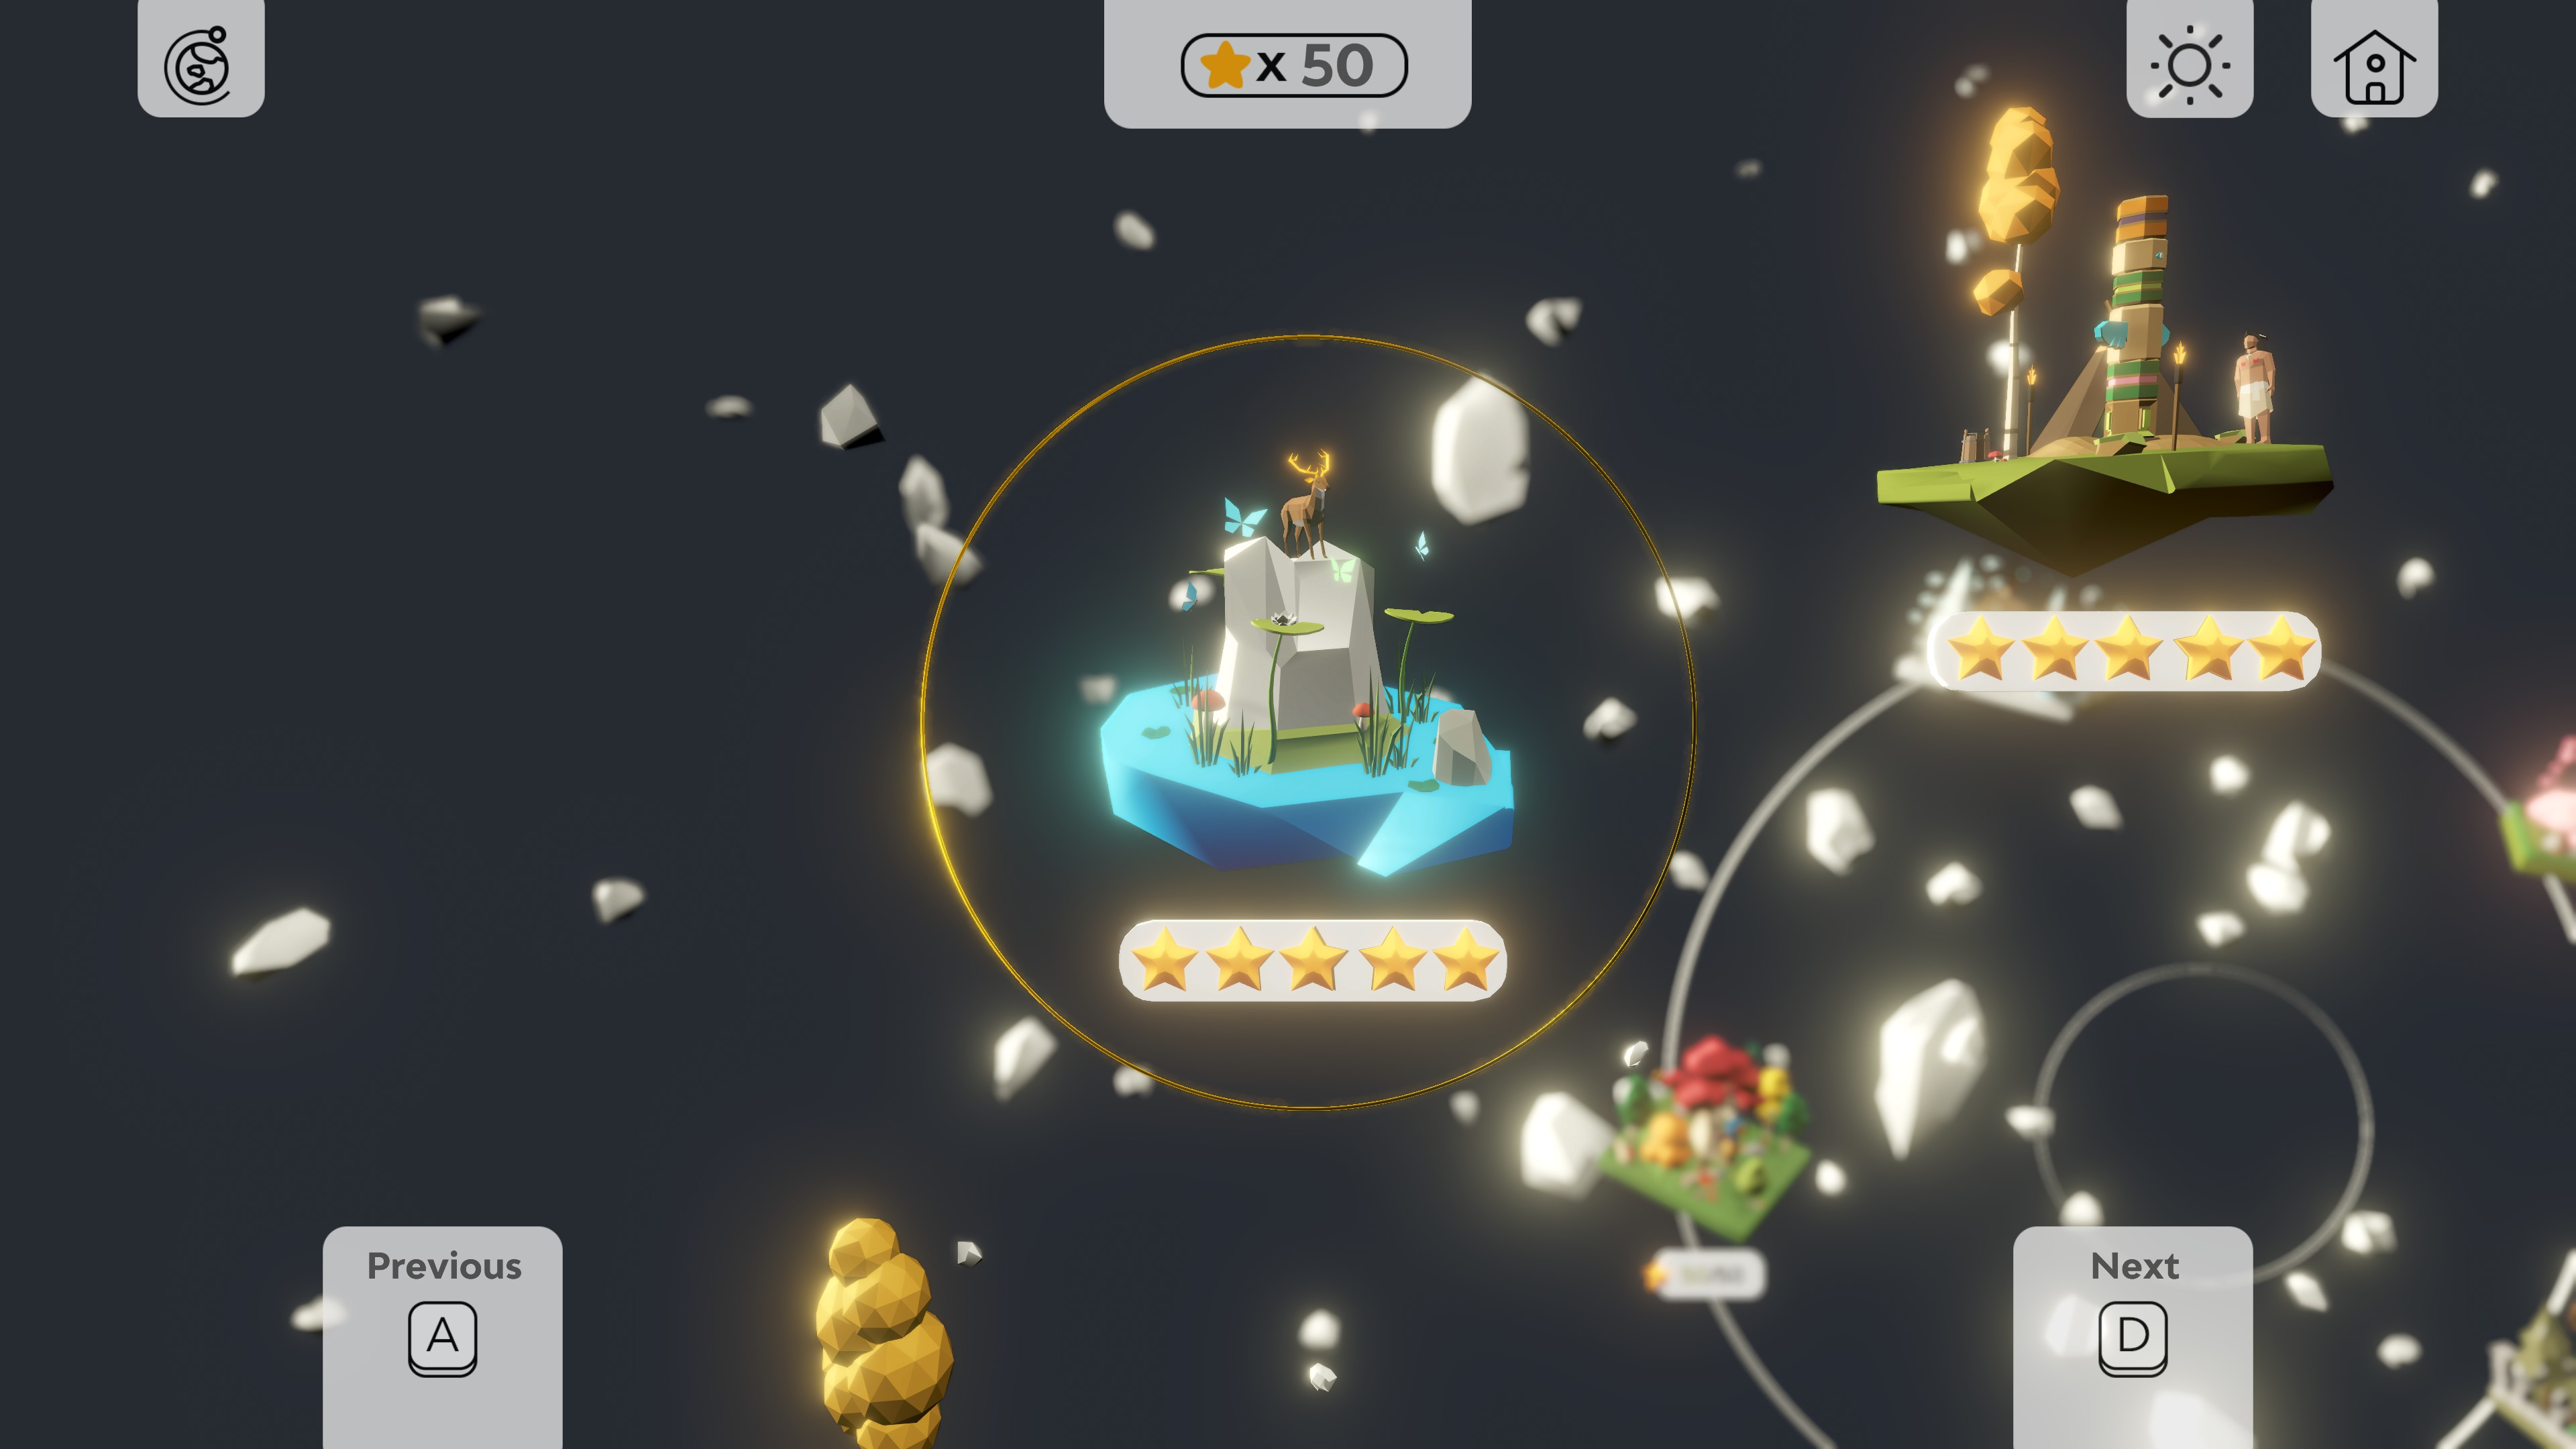 Tiny Lands. Level select showing two levels with perfect 5 stars.